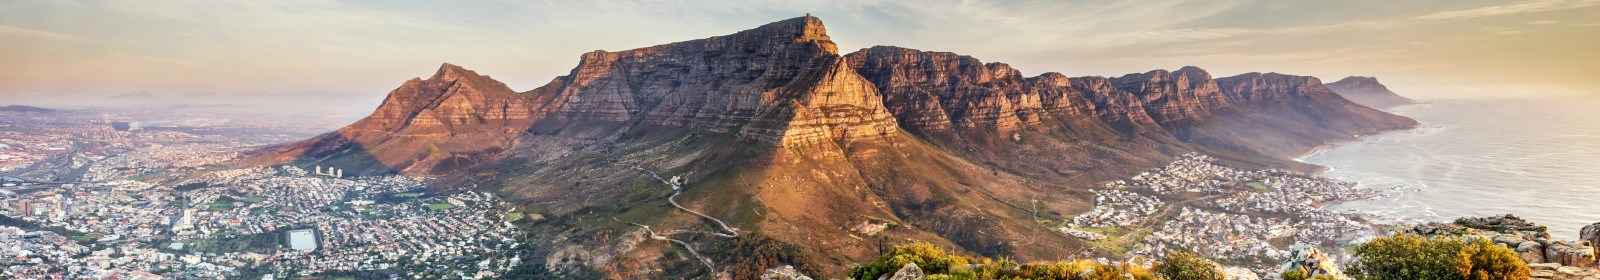 Top 10 hotspots to live in the Western Cape